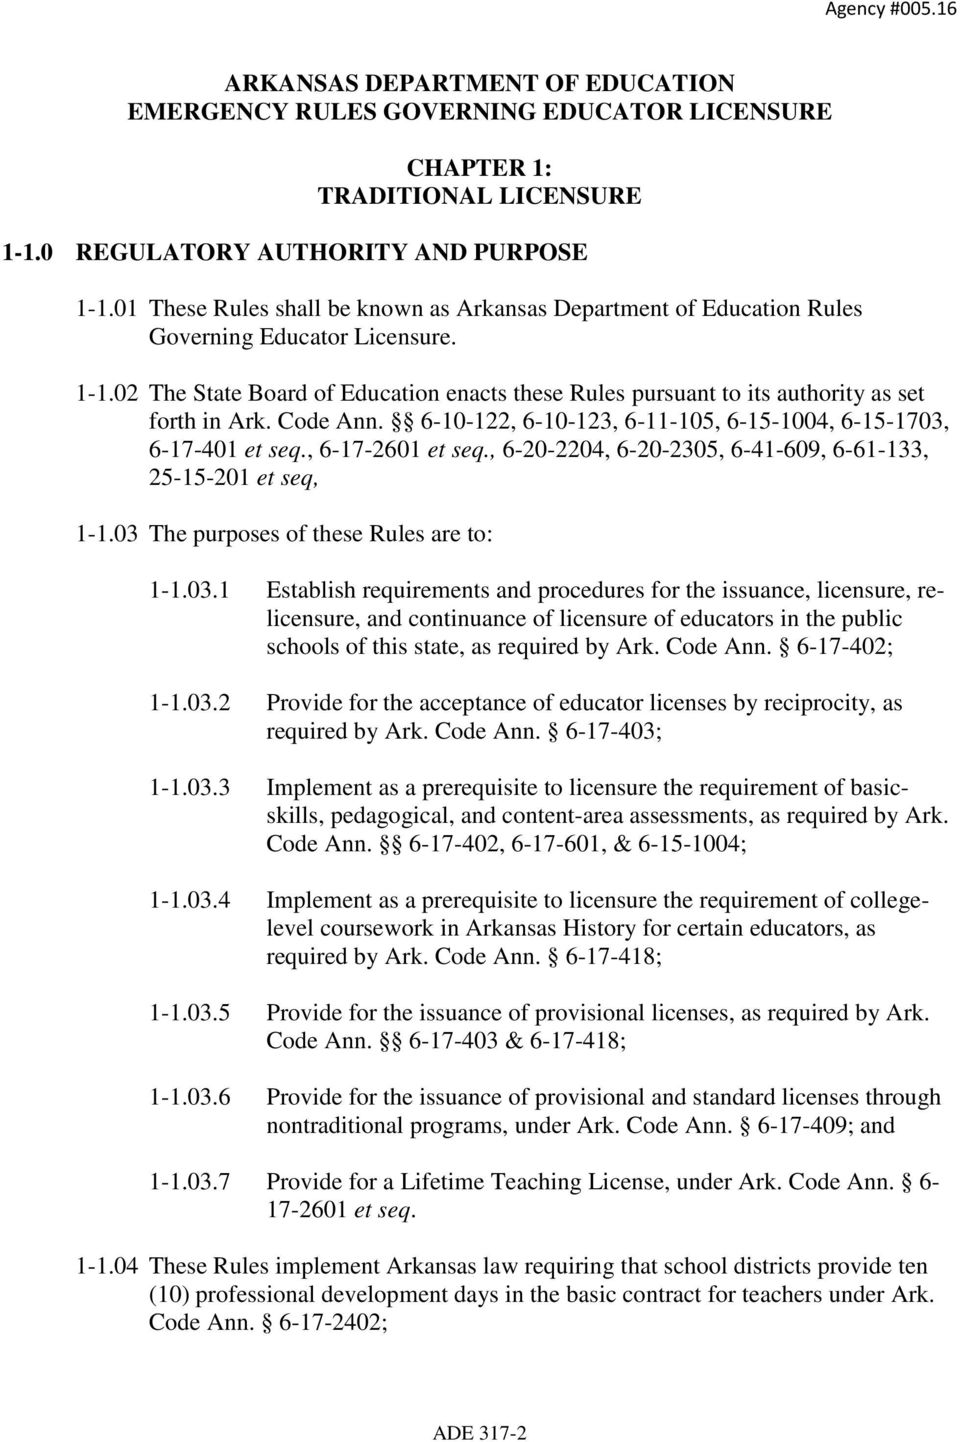 02 The State Board of Education enacts these Rules pursuant to its authority as set forth in Ark. Code Ann. 6-10-122, 6-10-123, 6-11-105, 6-15-1004, 6-15-1703, 6-17-401 et seq., 6-17-2601 et seq.